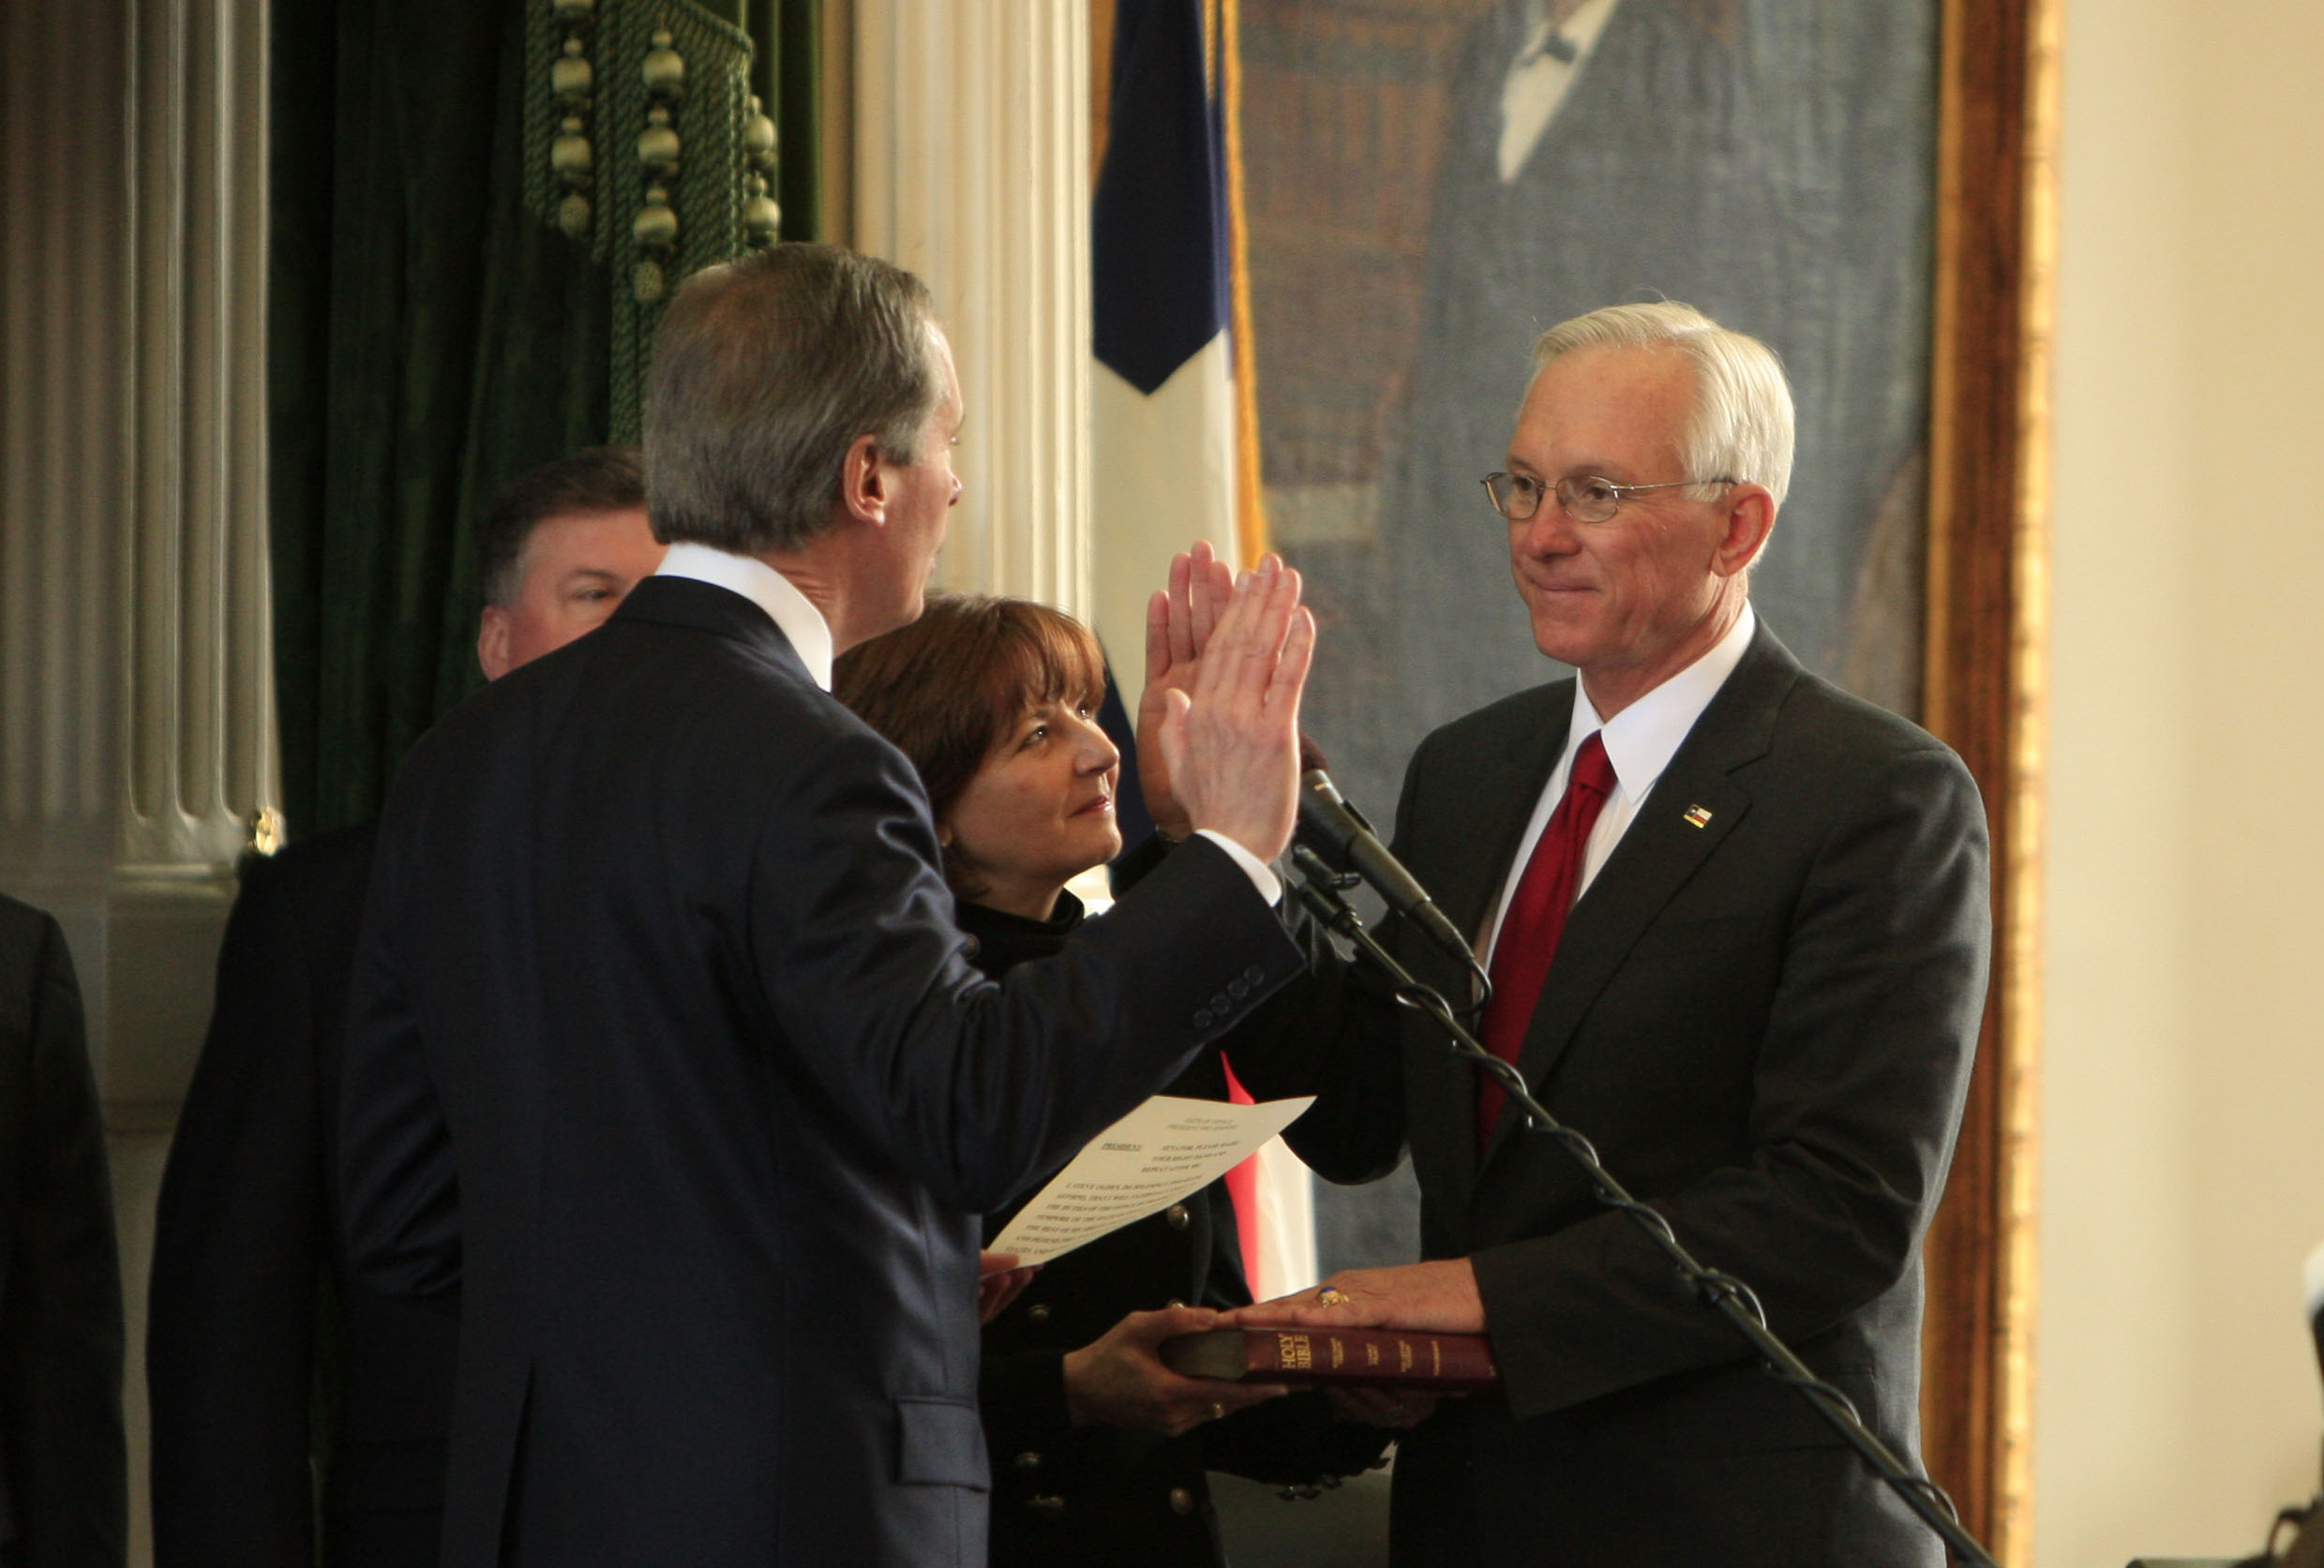 Senator Ogden sworn in as Senate President.